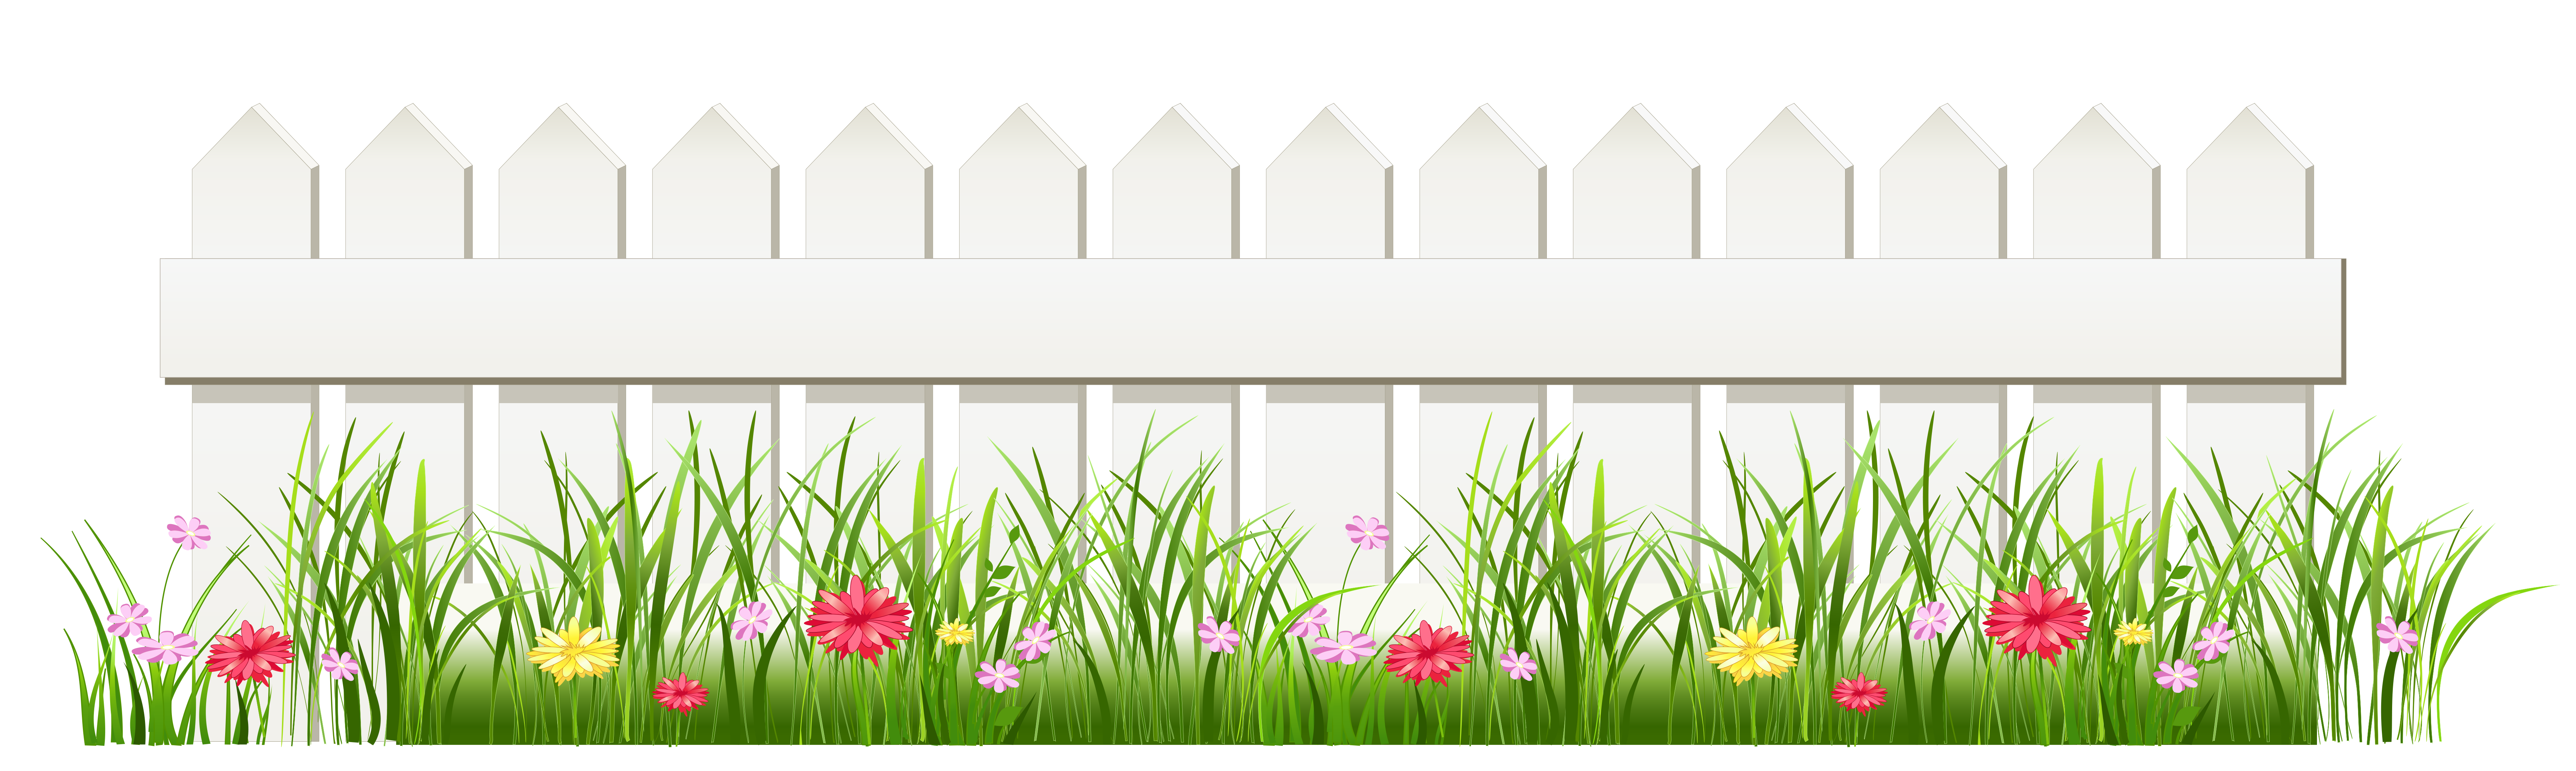 hight resolution of white fence grass derby backdrops superheroes clip art school stuff